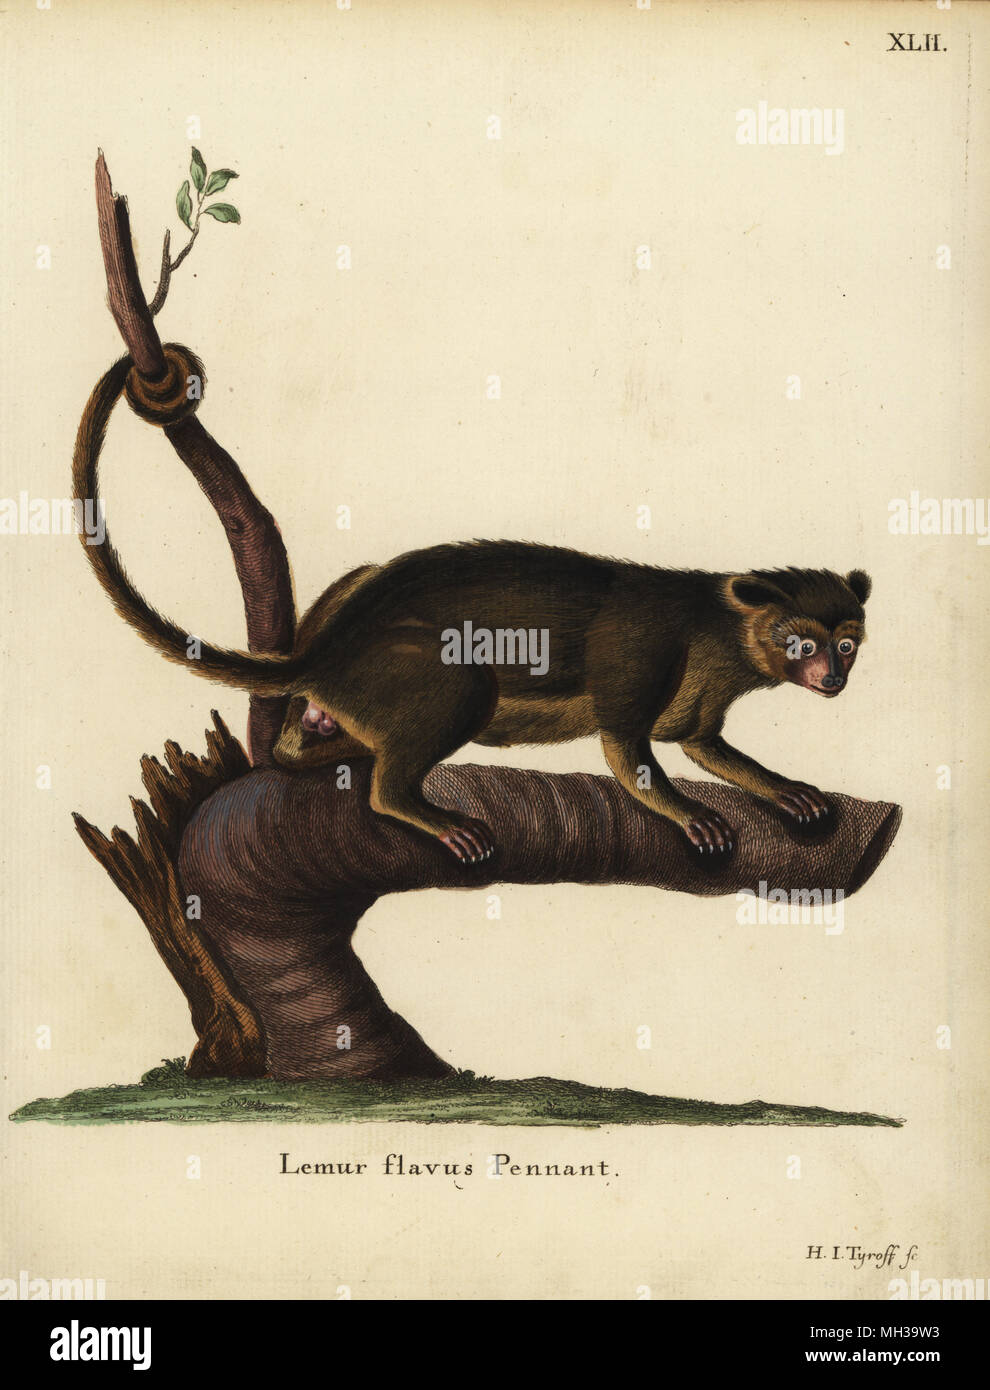 Kinkajou, Potos flavus. Lemur flavus Pennant. Handcoloured copperplate engraving by Hermann Jakob Tyroff from Johann Christian Daniel Schreber's Animal Illustrations after Nature, or Schreber's Fantastic Animals, Erlangen, Germany, 1775. - Stock Image